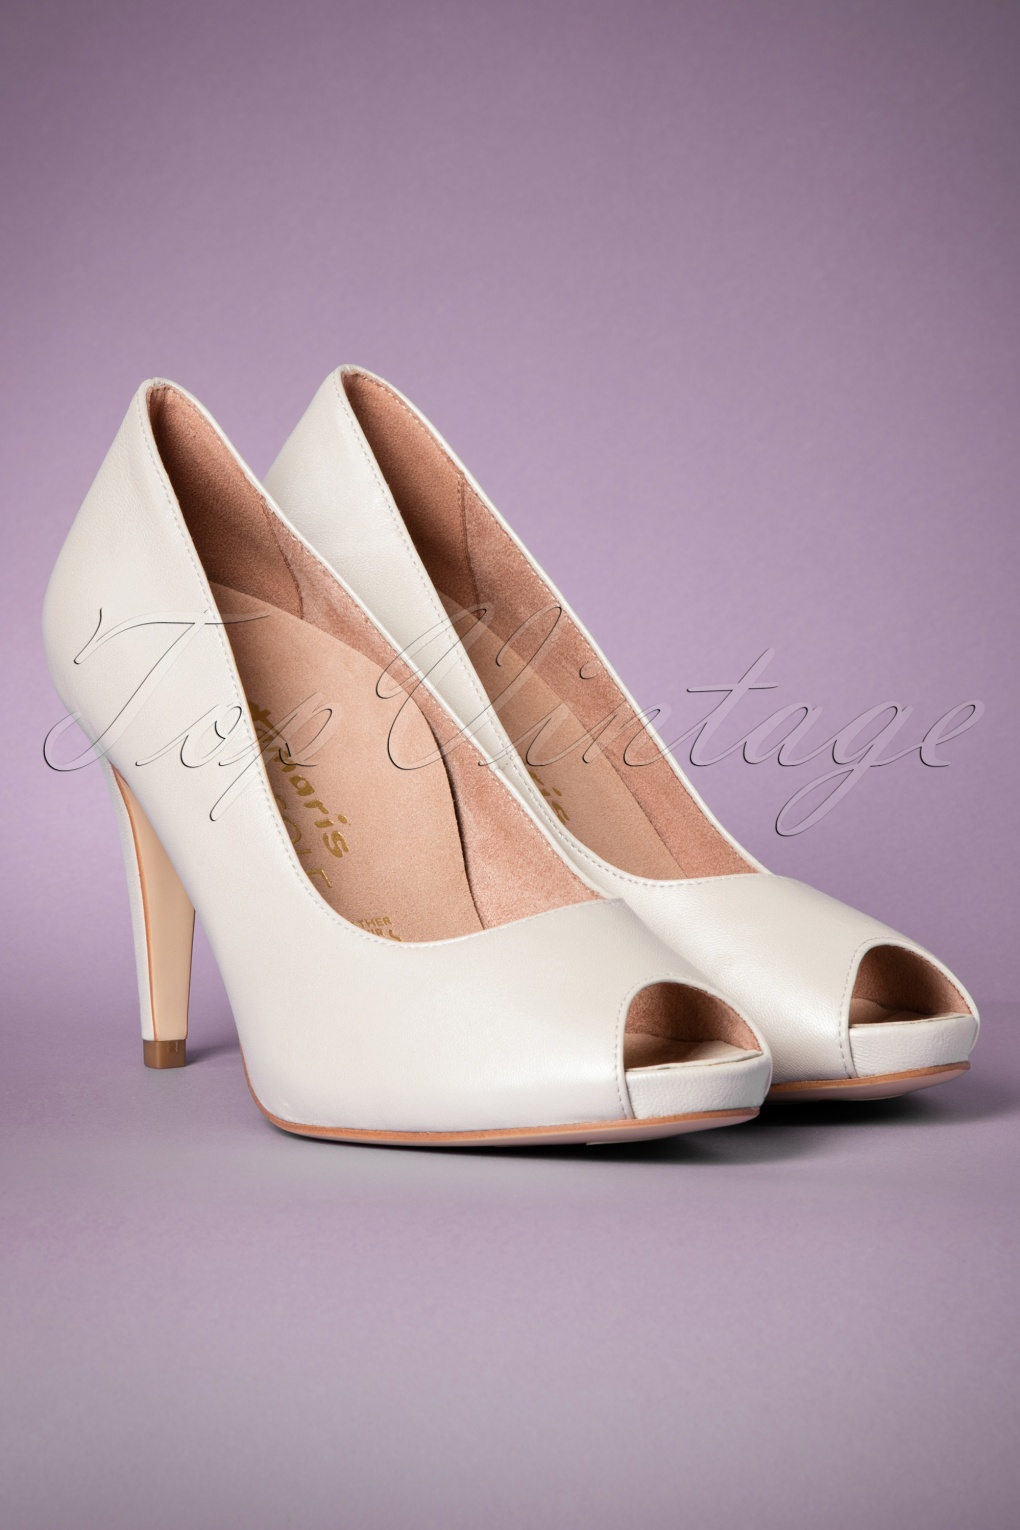 1950s Style Shoes 50s Leather Peeptoe Pumps in Pearl White £79.69 AT vintagedancer.com